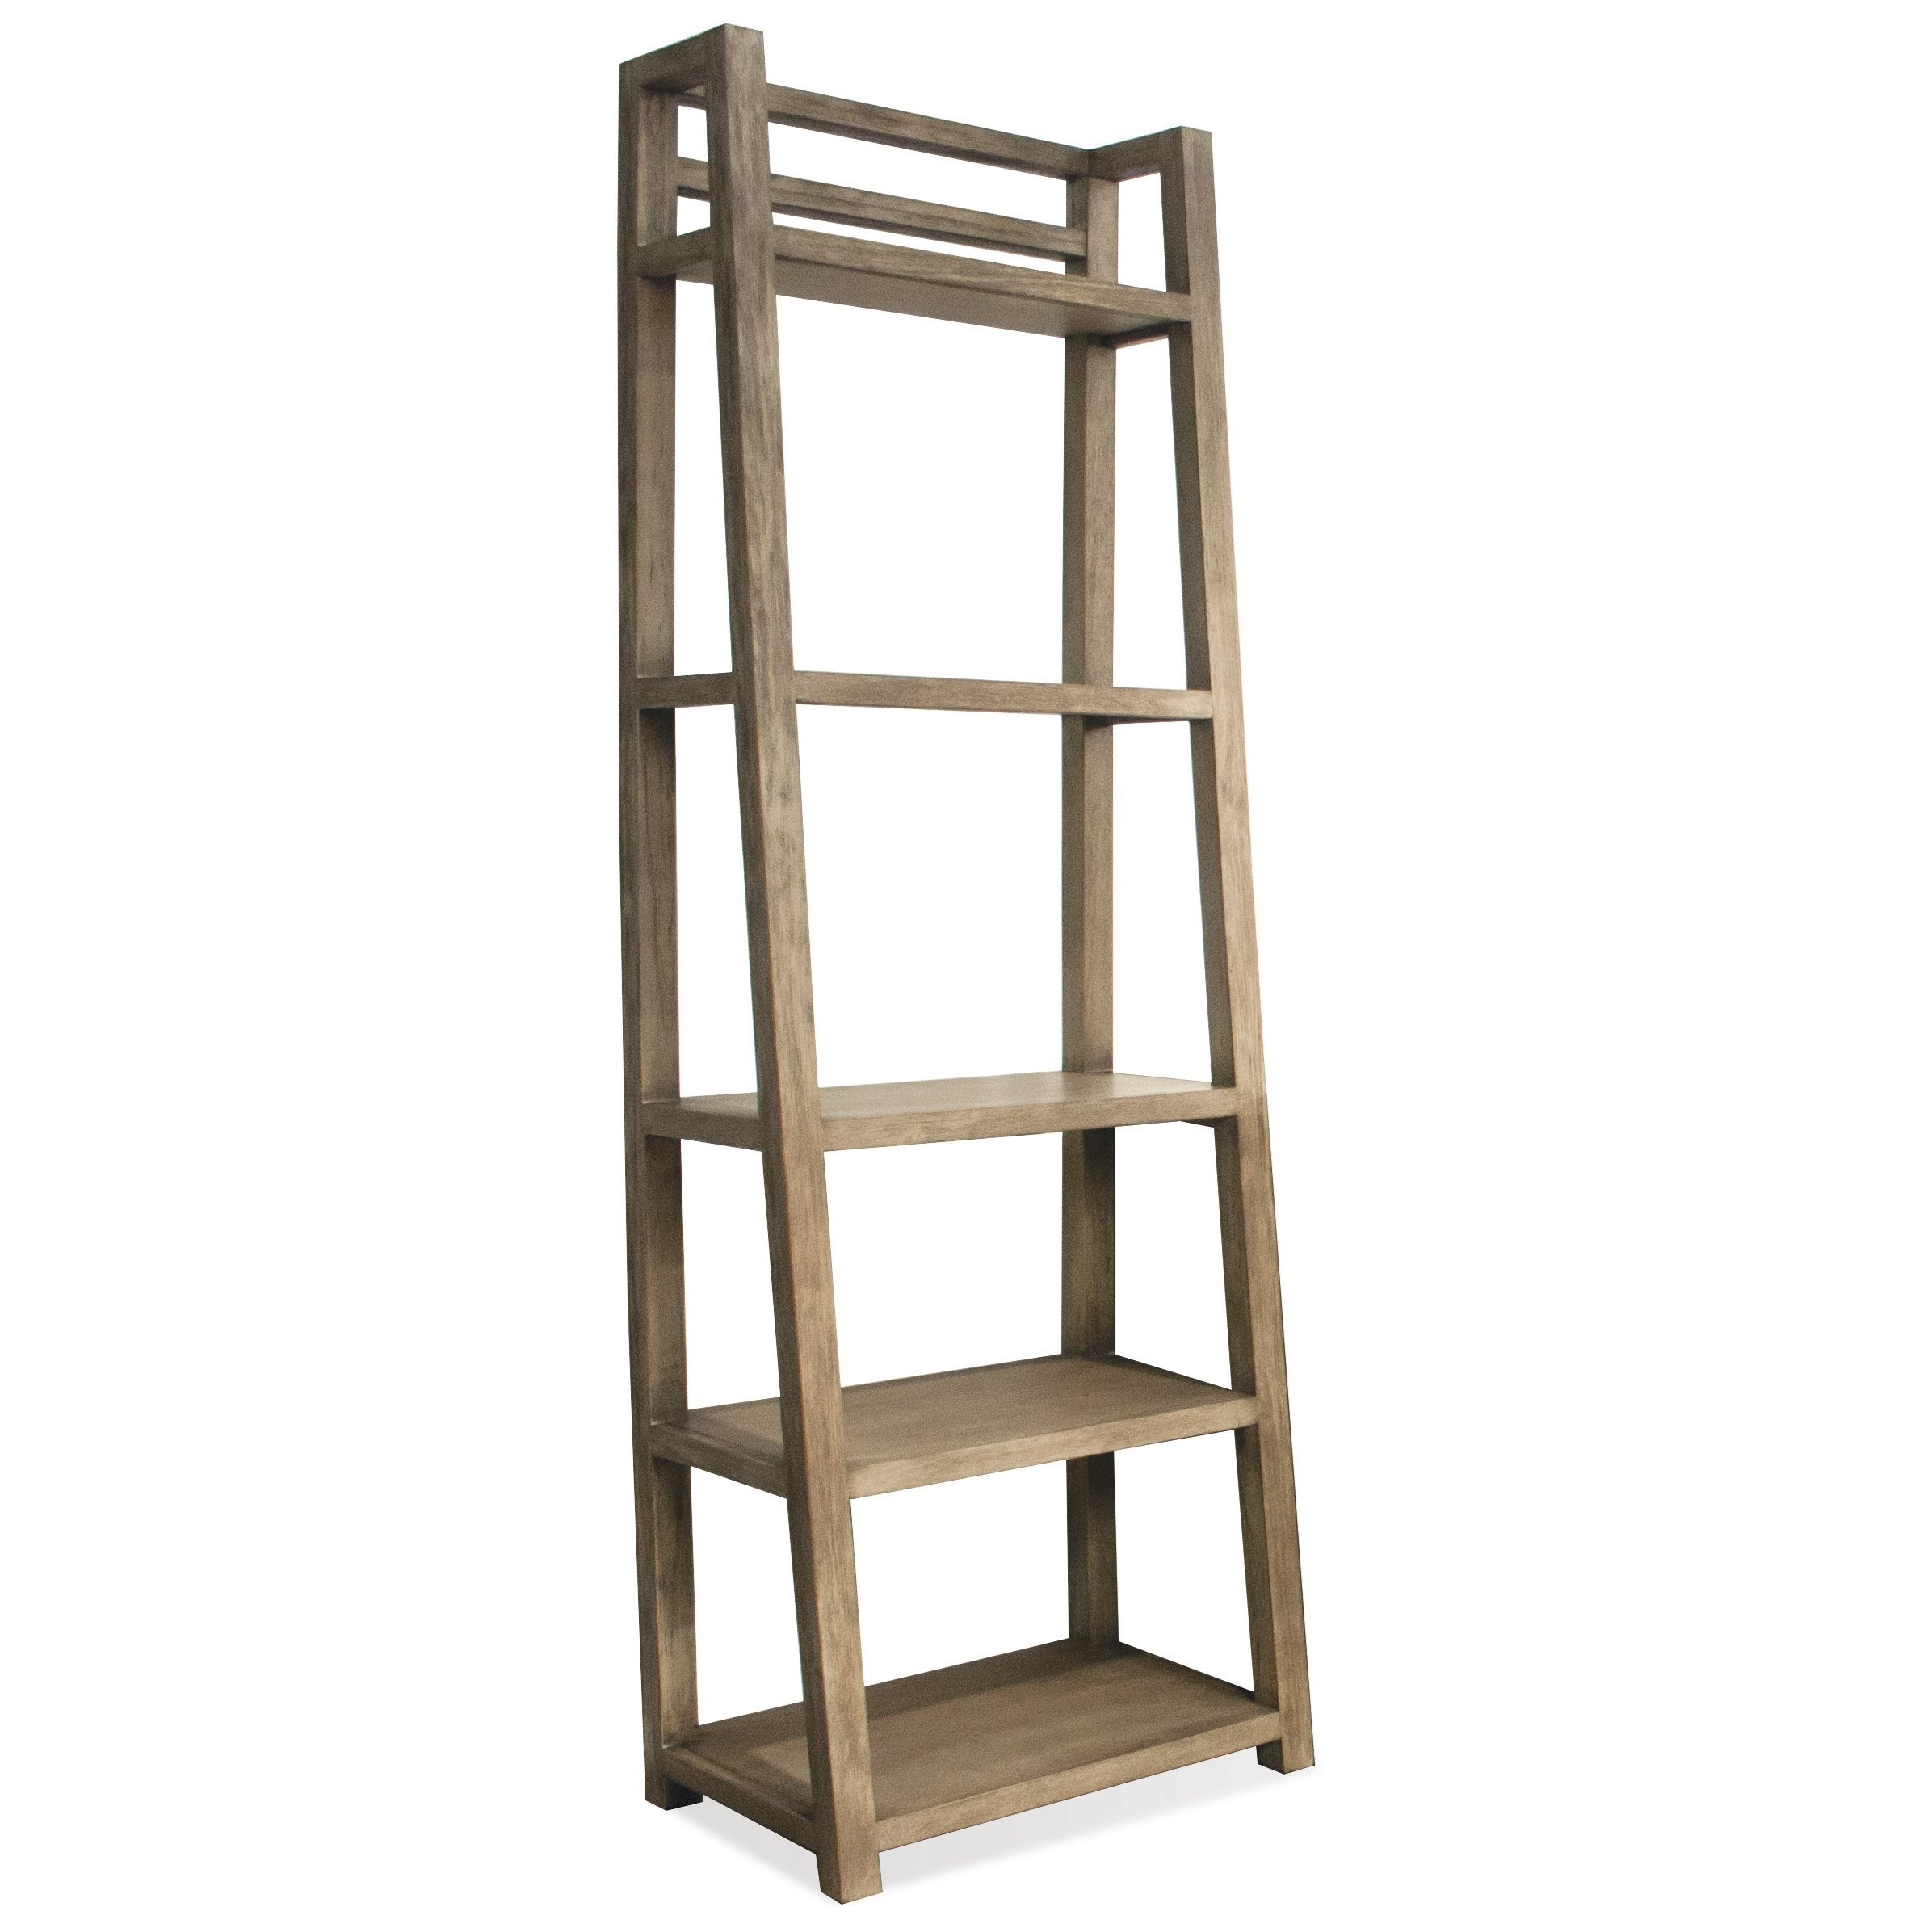 Riverside Furniture Perspectives Leaning Bookcase with 5